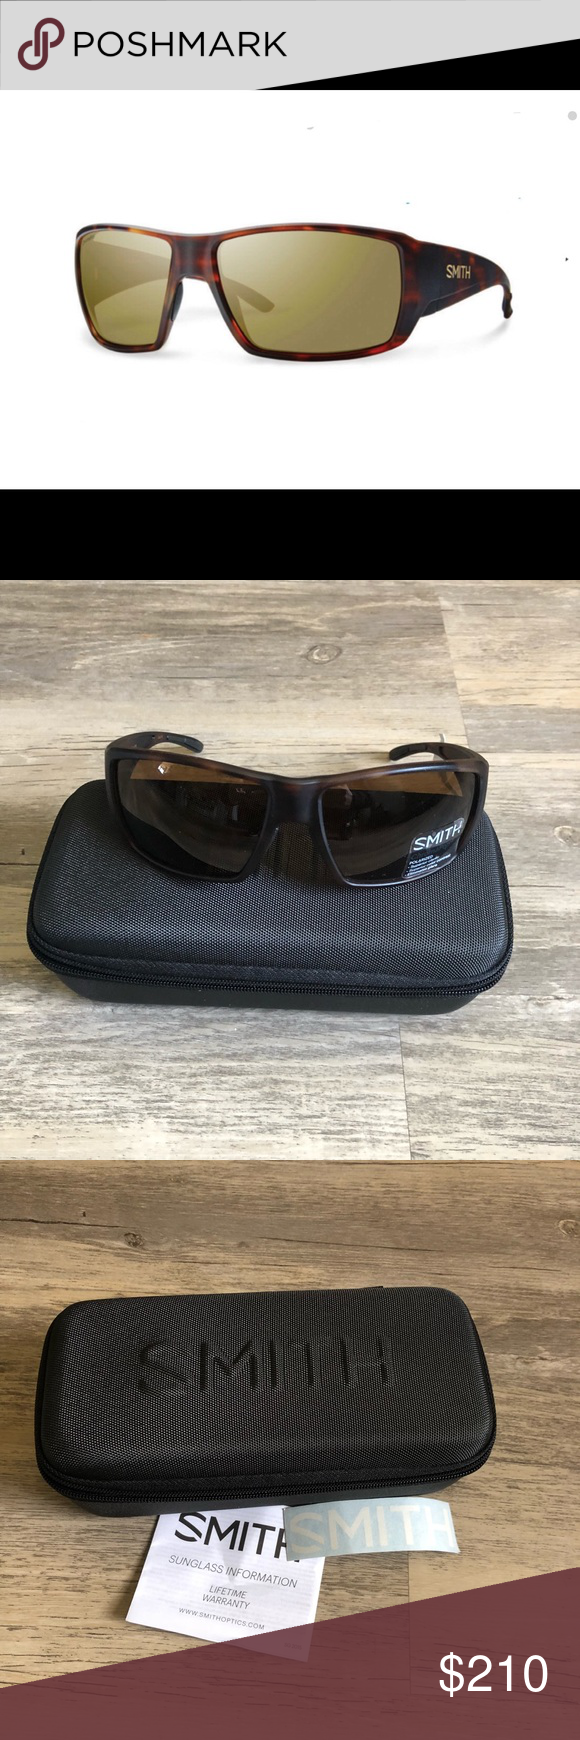 194223f220 🆕Smith Guide s Choice Matte Havana 96V Sunglasses 🆕Smith Guide s Choice  Matte Havana 96V Sunglasses ChromaPop Polarized Frame is a matte tortoise  brown ...